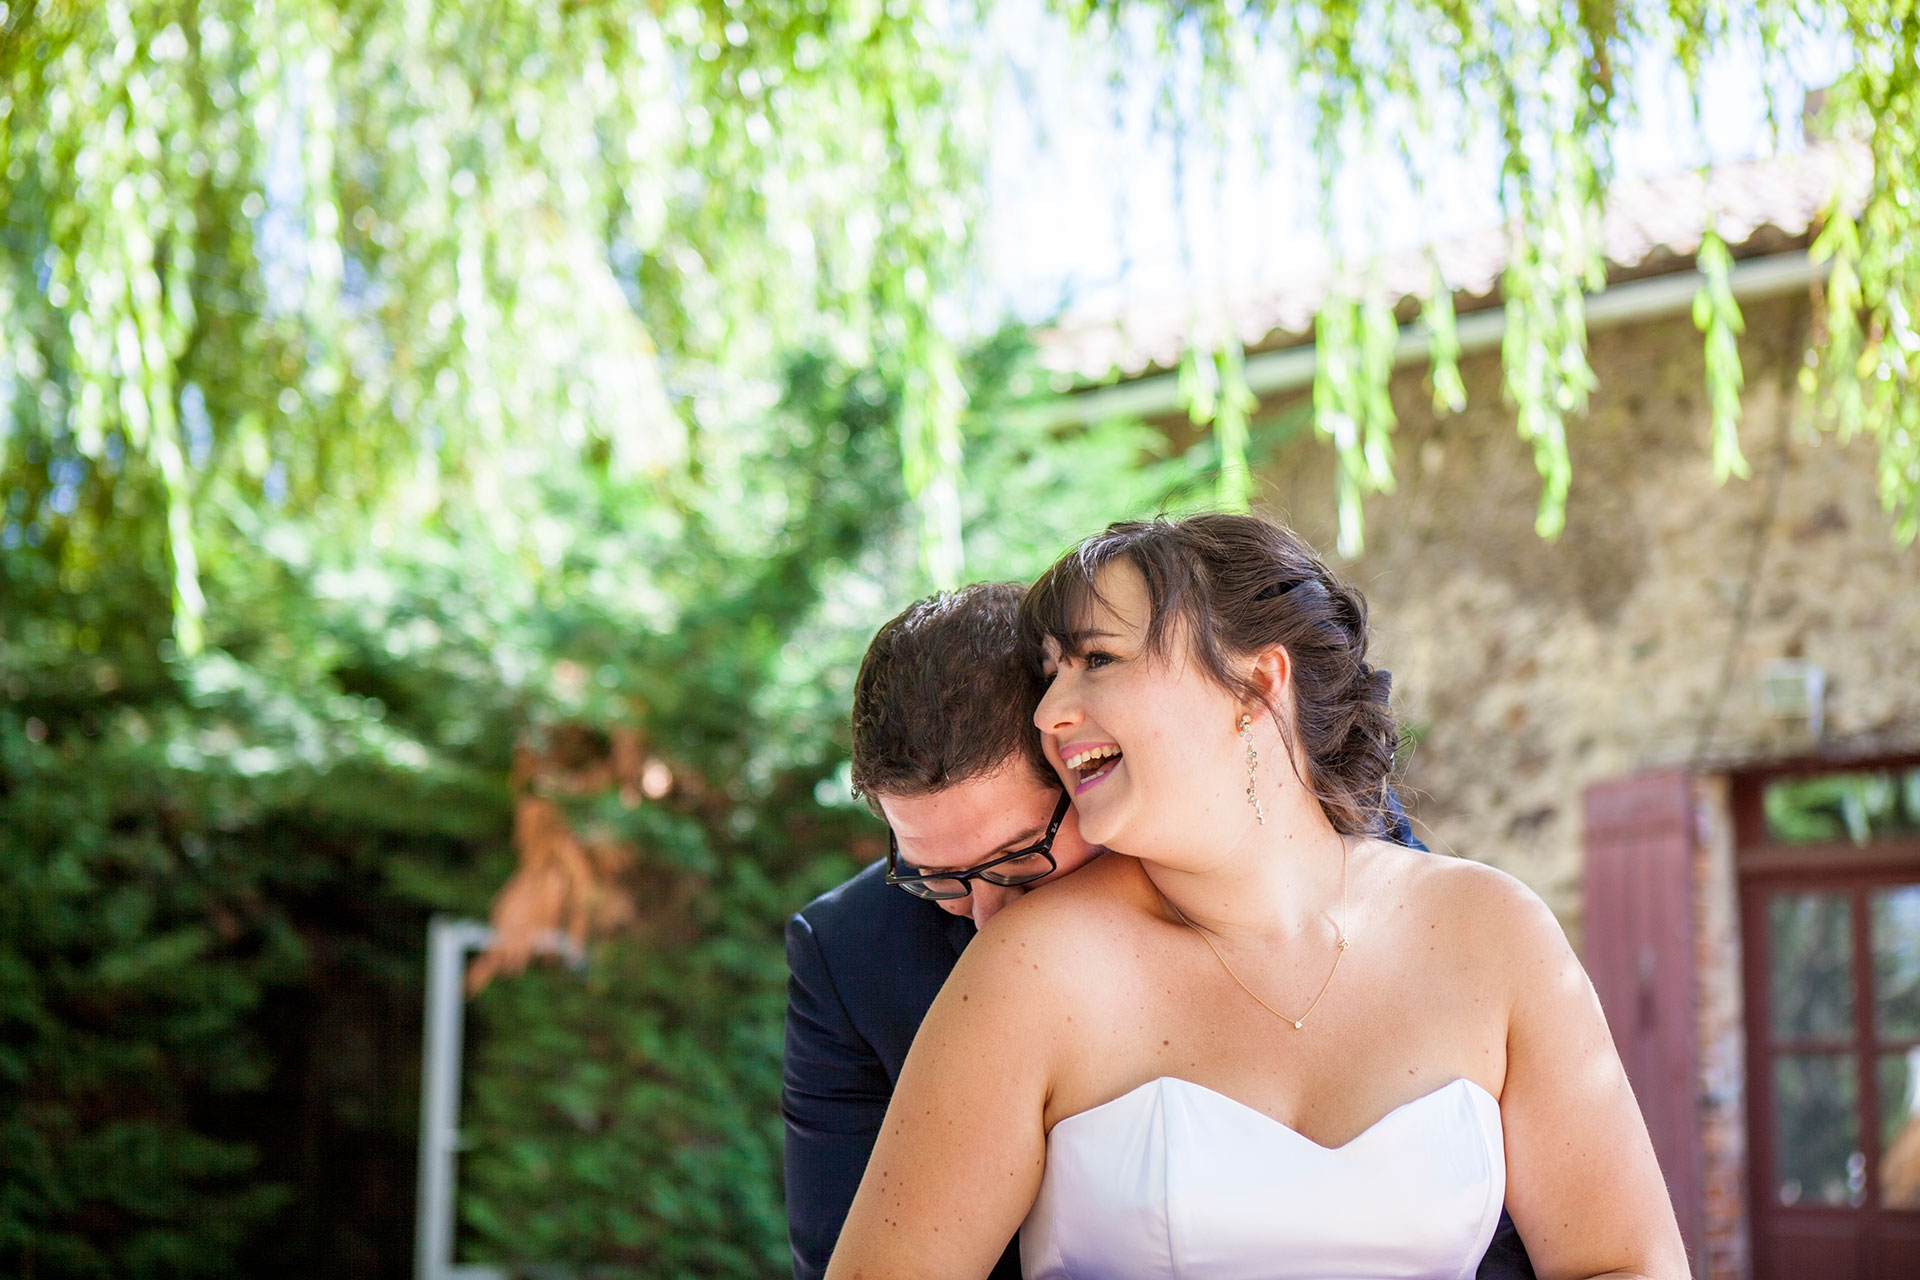 particuliers-evenements-mariages-oui-france&philippe-36